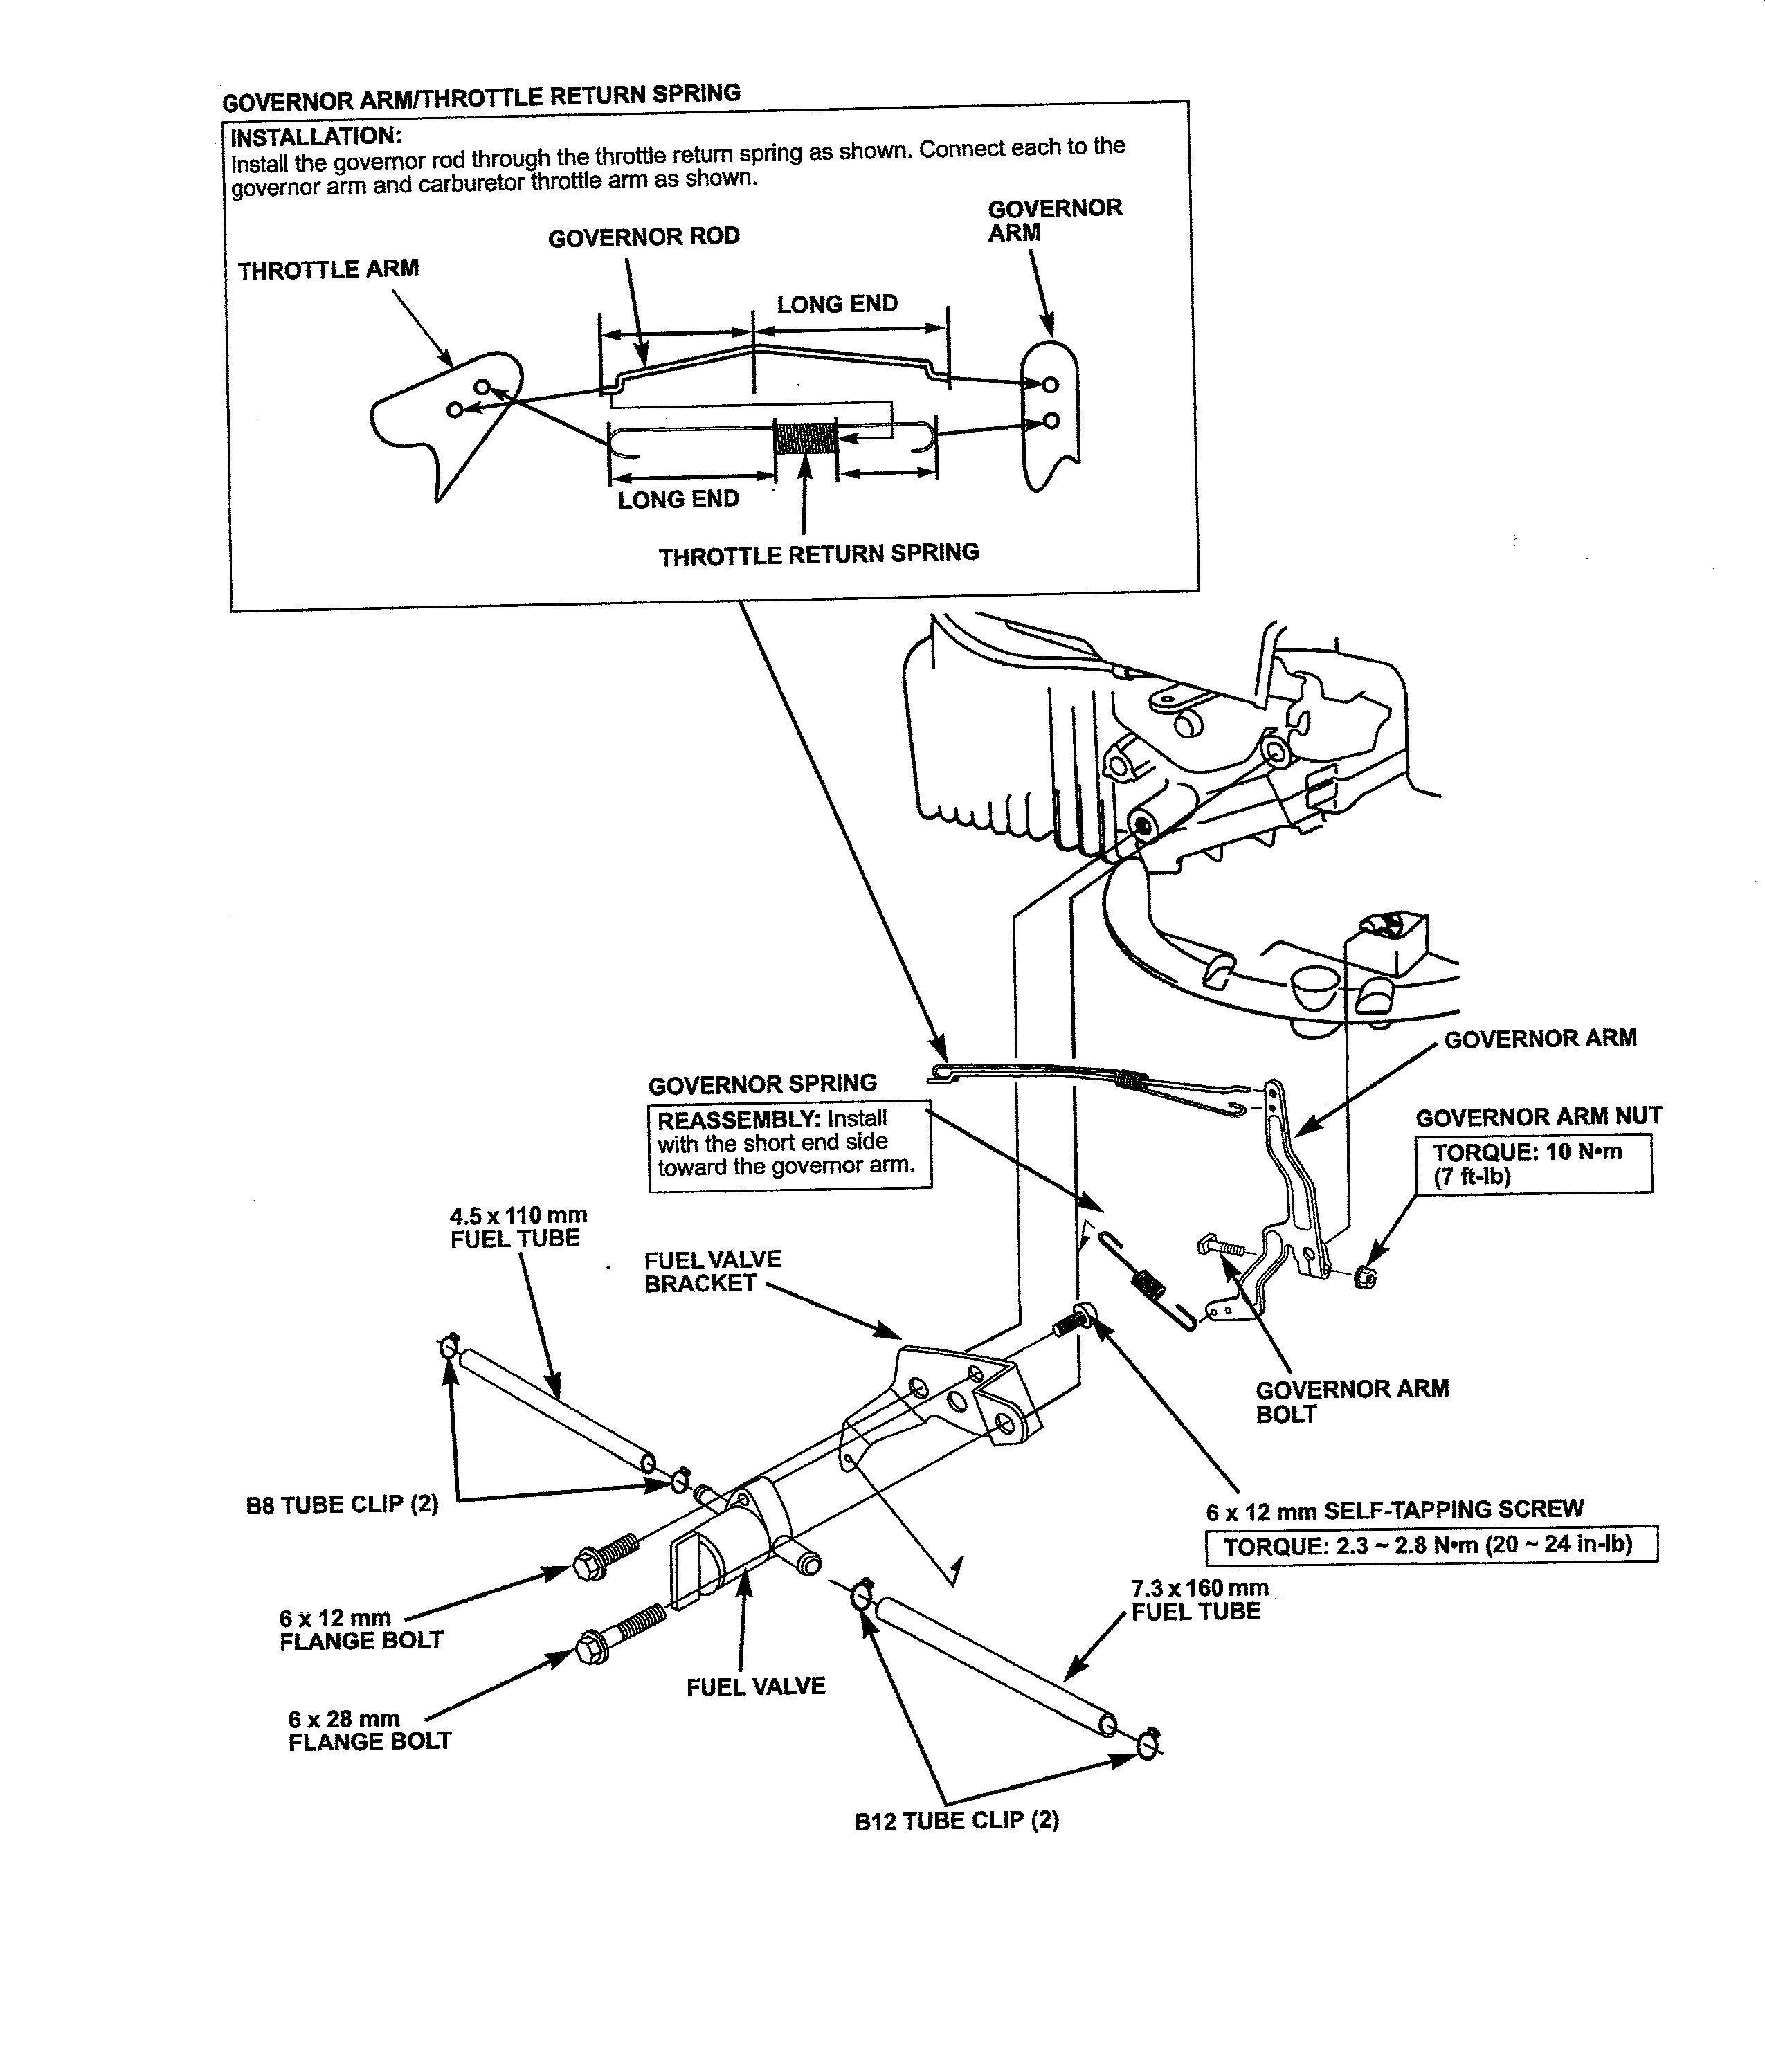 Honda Engine Gcv160 Carburetor Diagram I Have A Hrx217 and I Was Wondering if You Can Answer A Question Of Honda Engine Gcv160 Carburetor Diagram